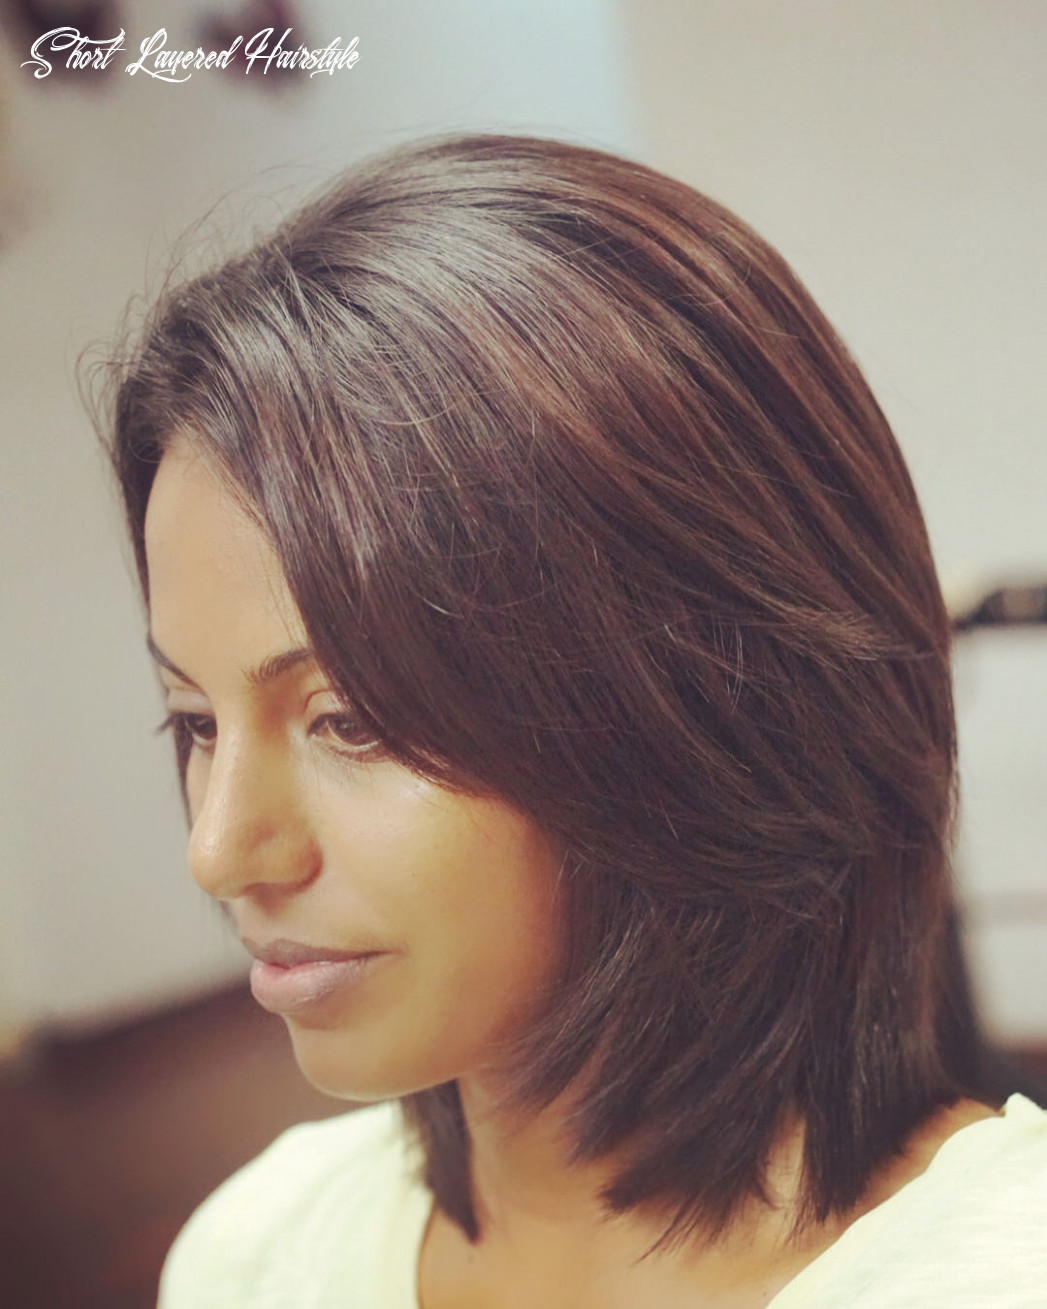 11 gorgeous short layered hairstyles for all hair types prochronism short layered hairstyle